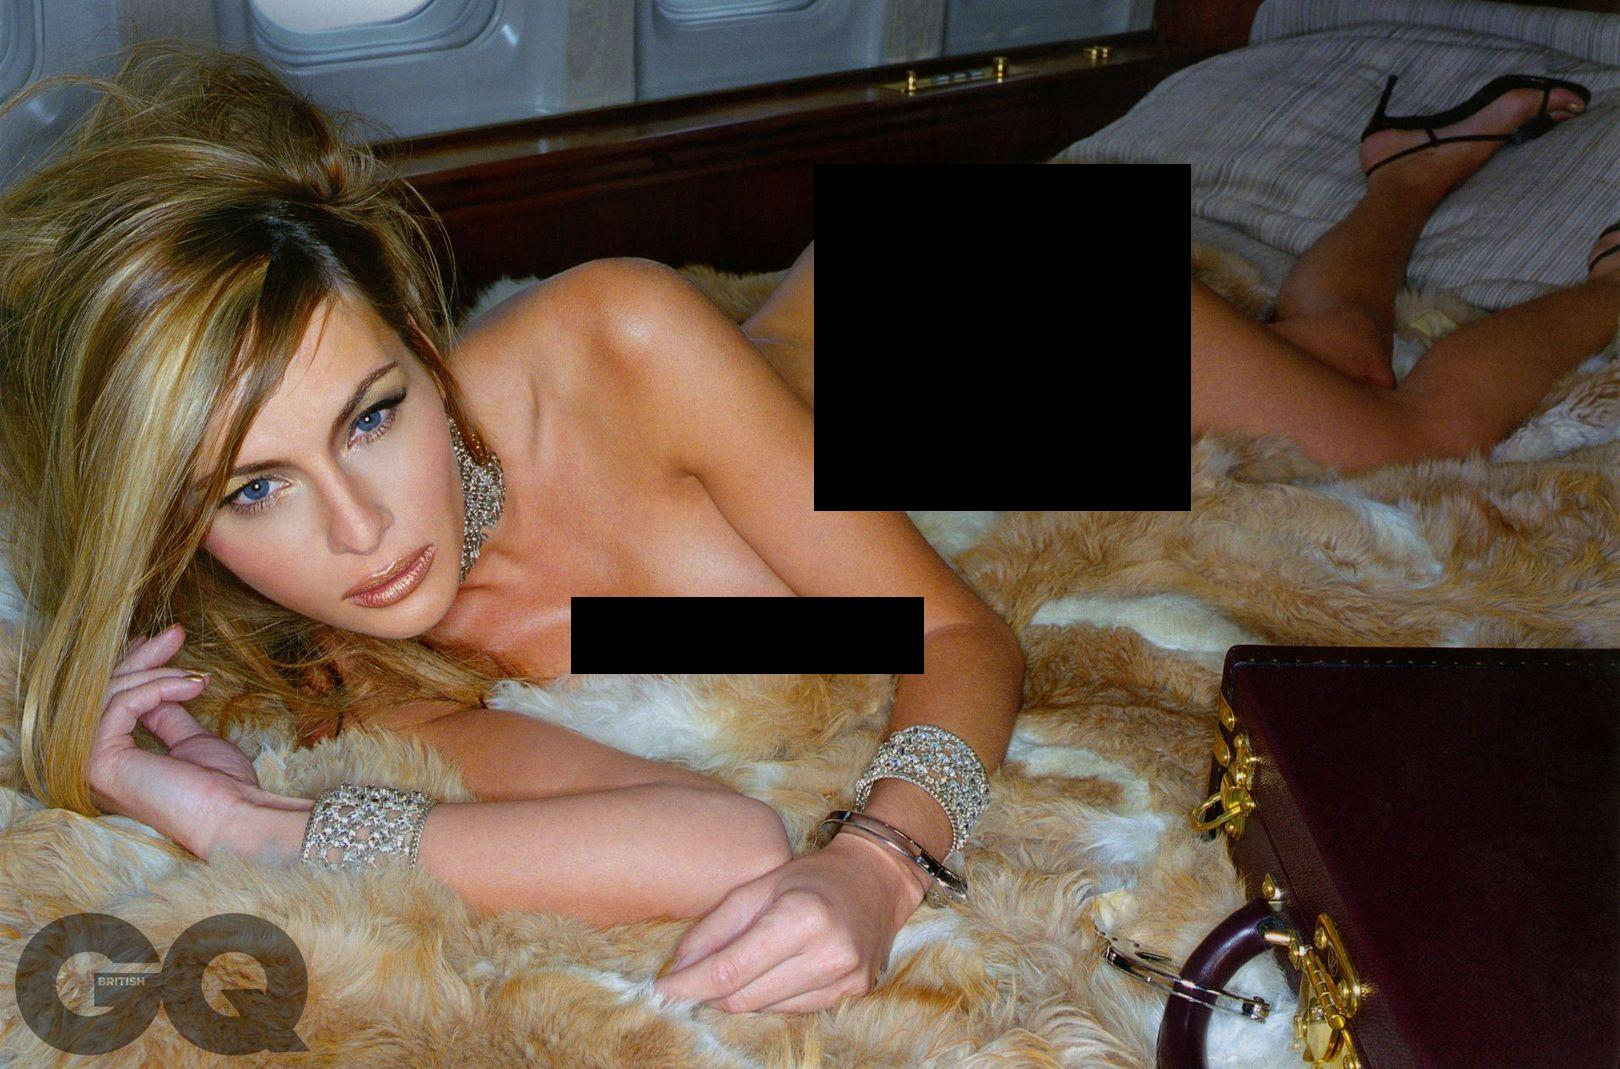 Aisha Donald Trump S Third Wife Melania Trump Posed Nude And Married Him For His Money